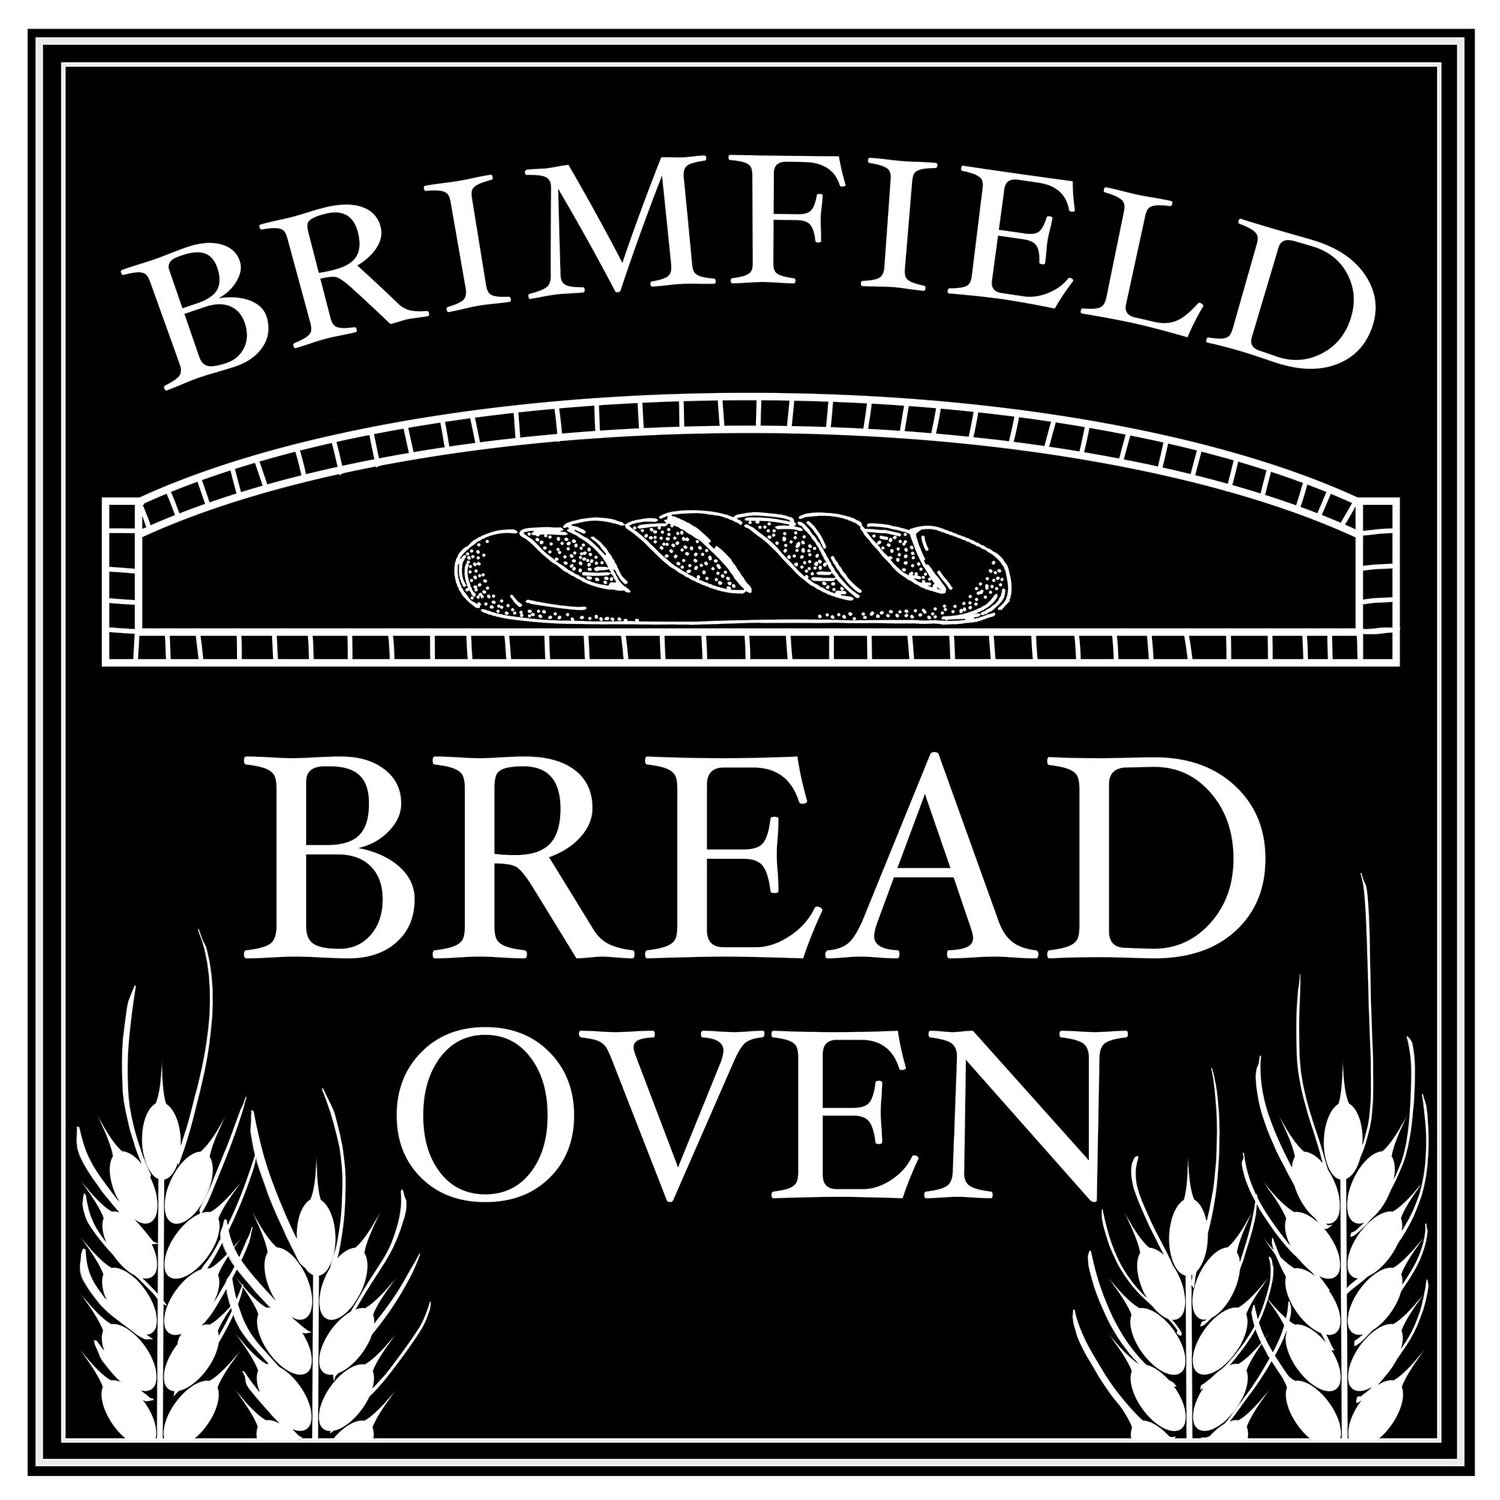 Brimfield Bread Oven